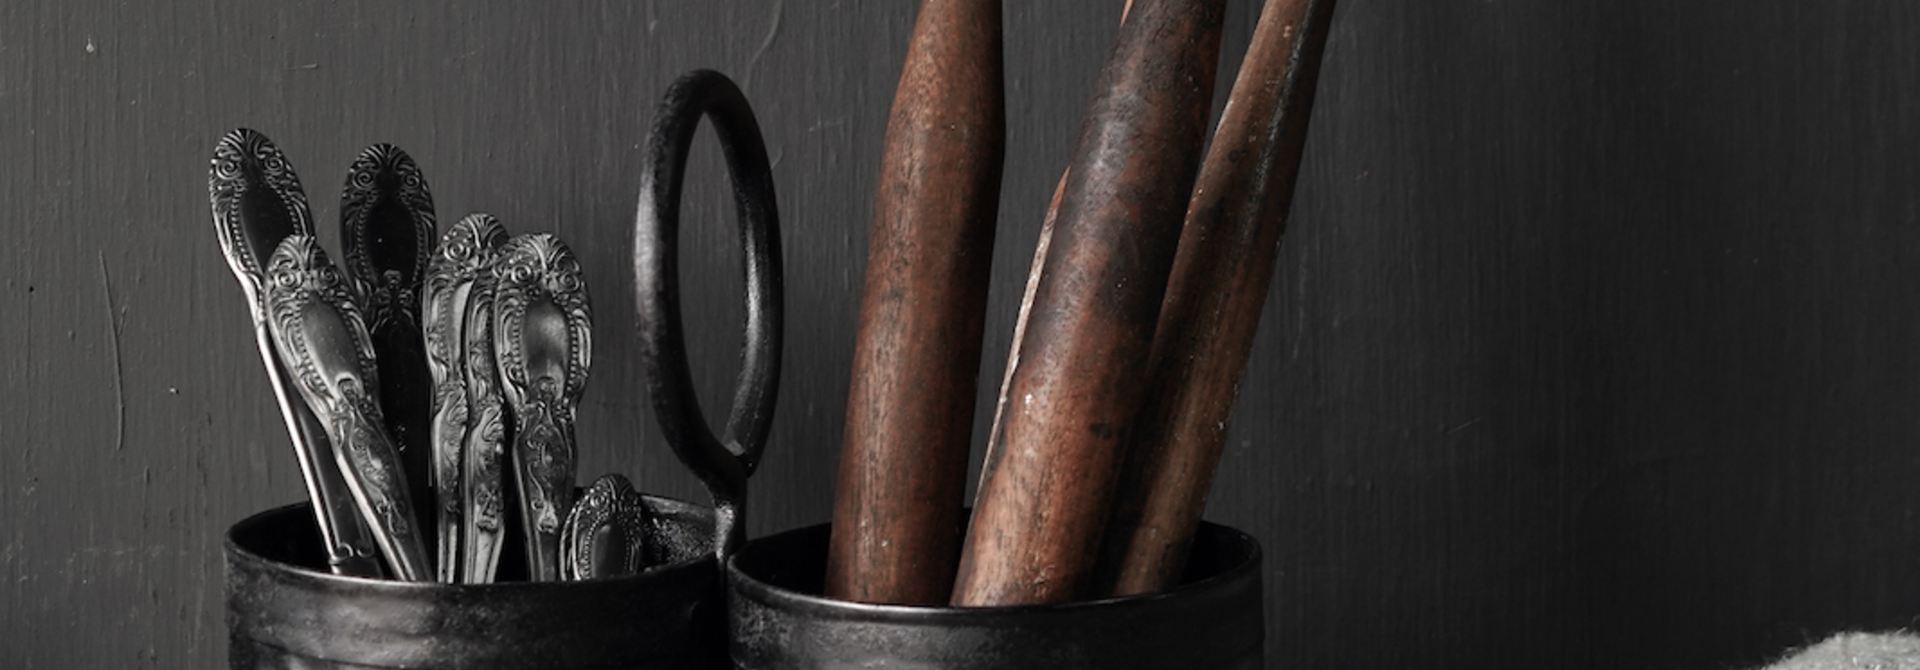 Black Iron cups 2 together with handle